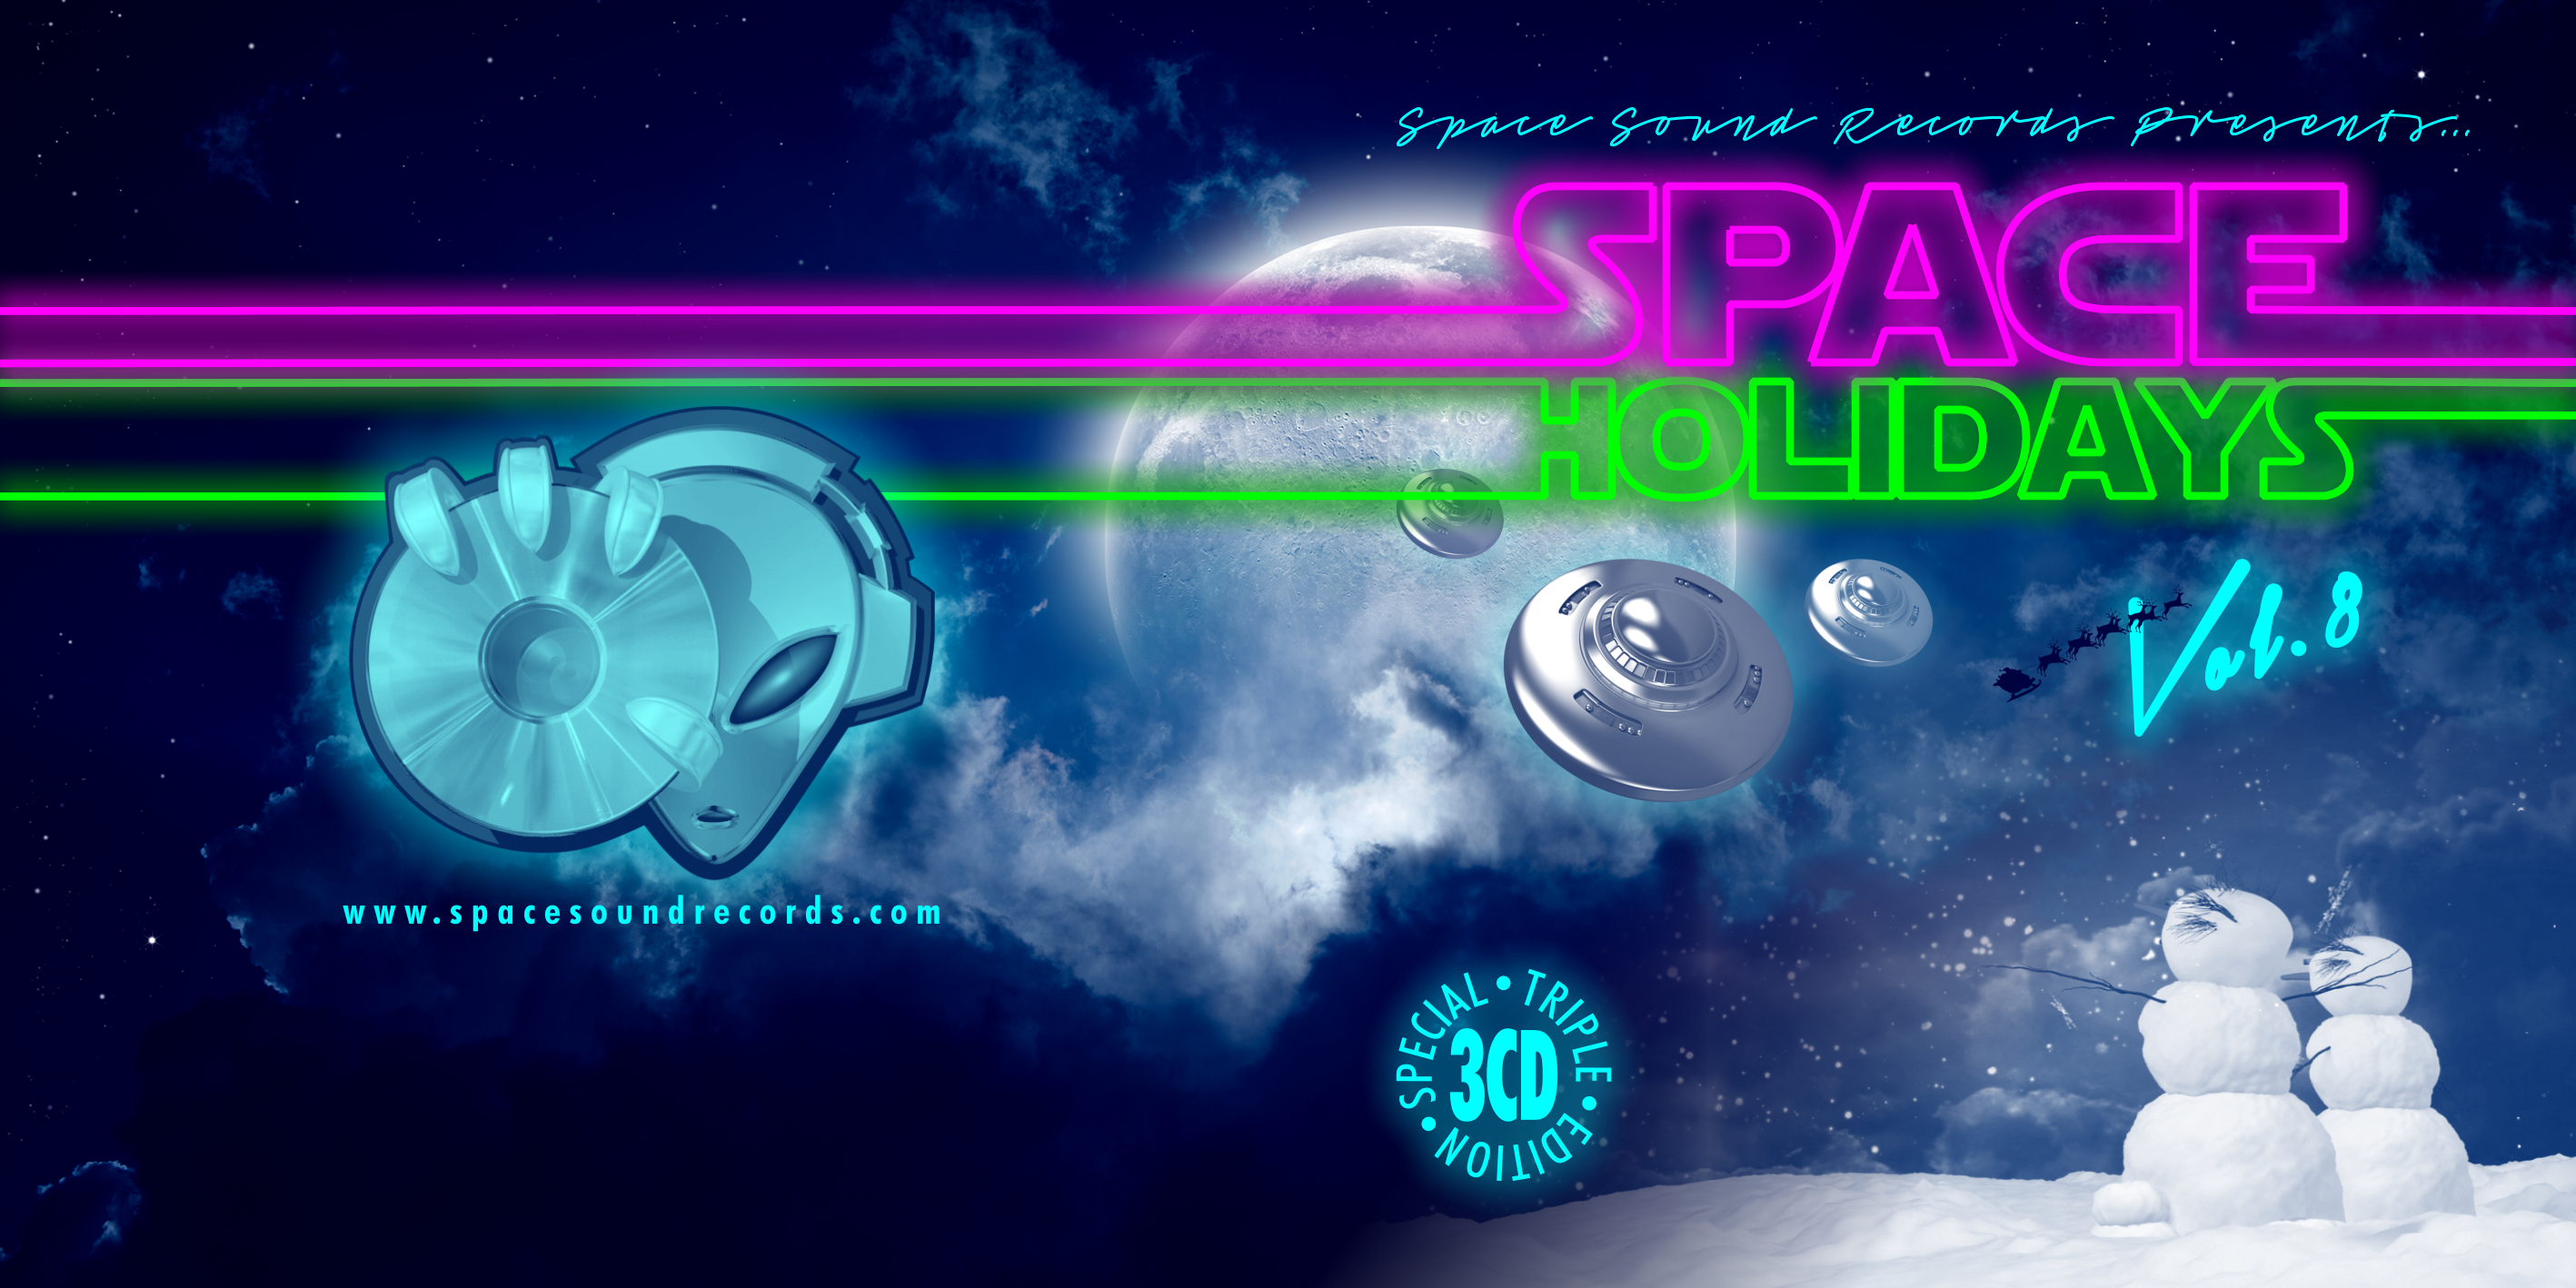 SpaceHolidays8_FrontCover.jpg